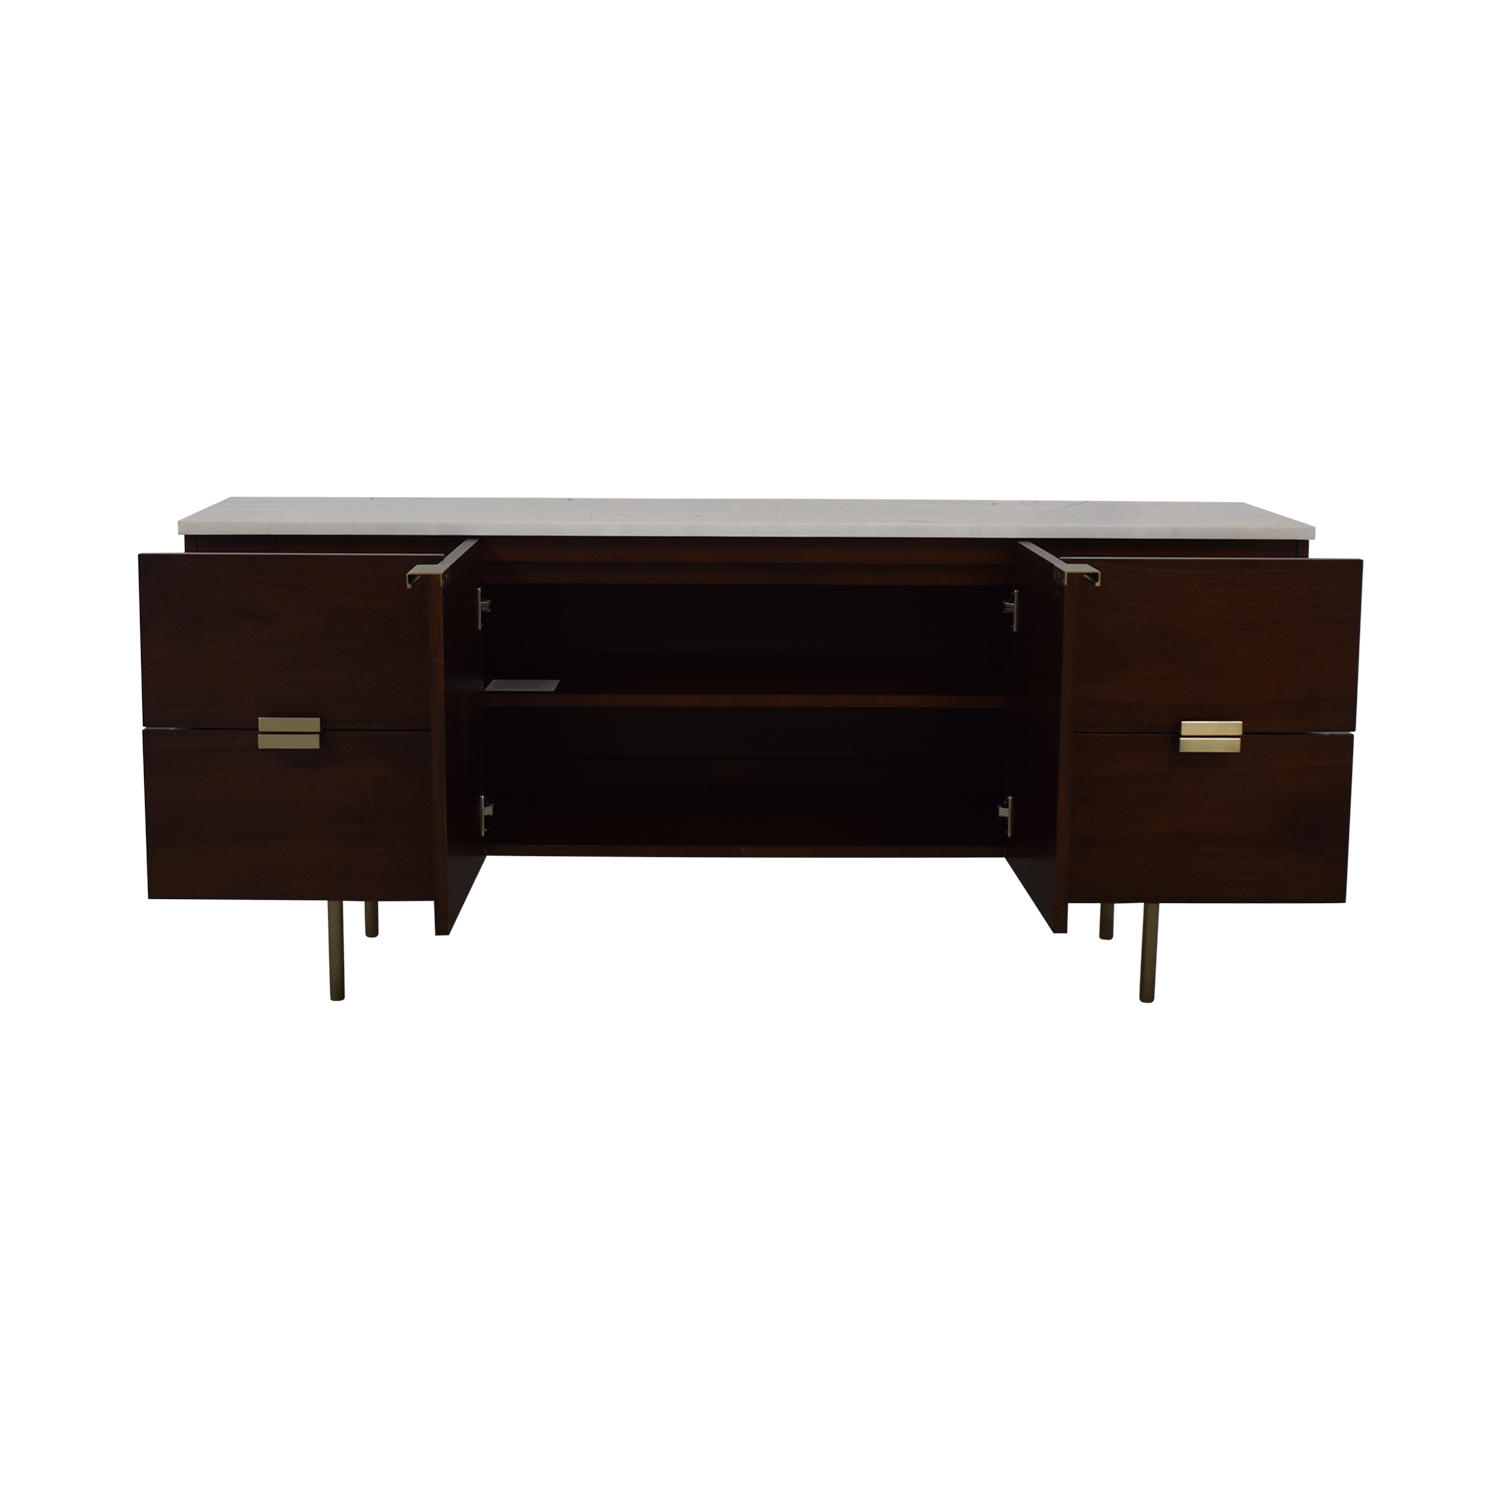 West Elm West Elm Delphine Buffet coupon